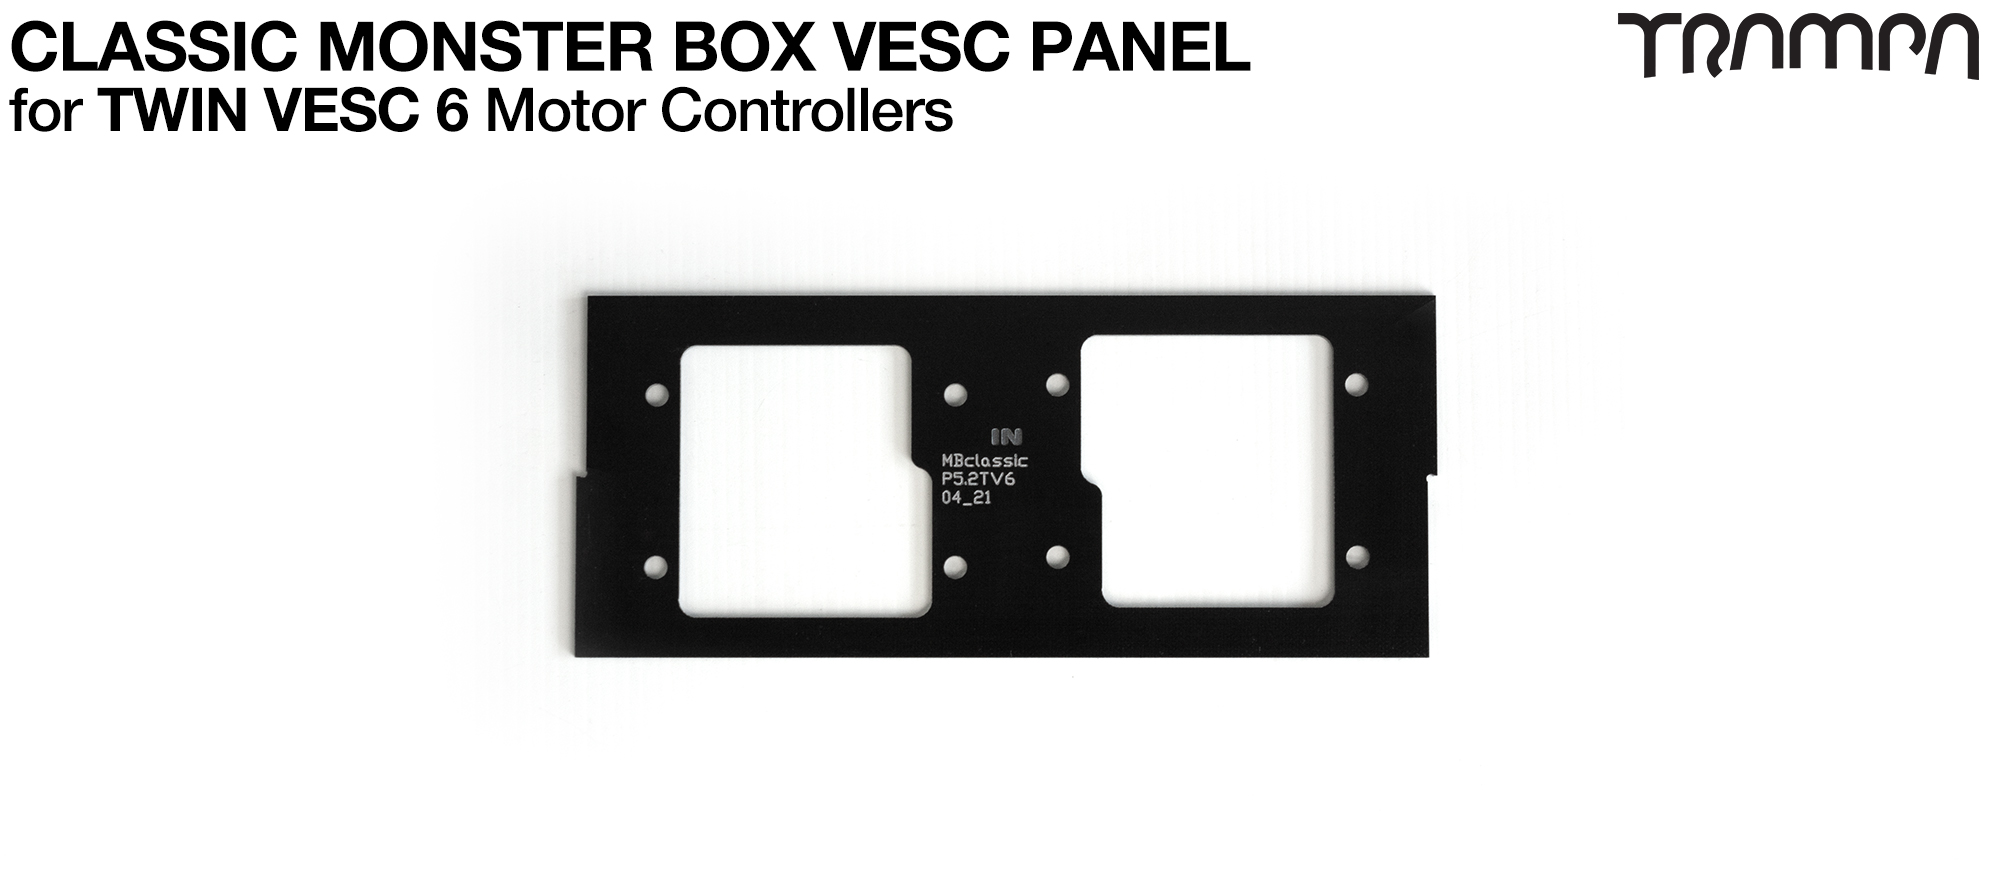 CLASSIC Monster Box MkIV 2x VESC 6 Mounting Panel